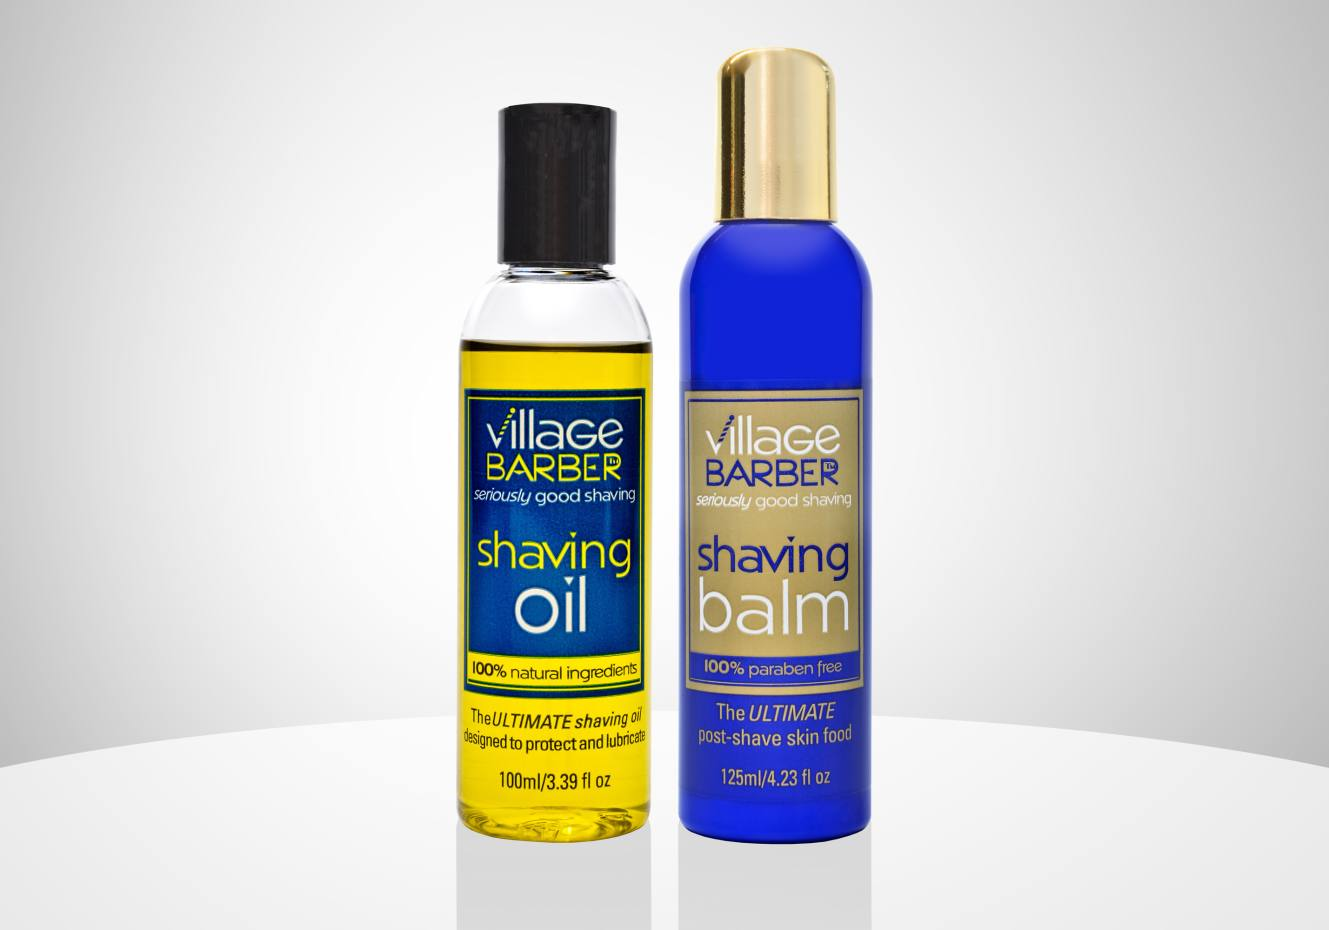 From left: Village Barber Shaving Oil, £17.95 for 100ml; and Shaving Balm, £19.95 for 125ml